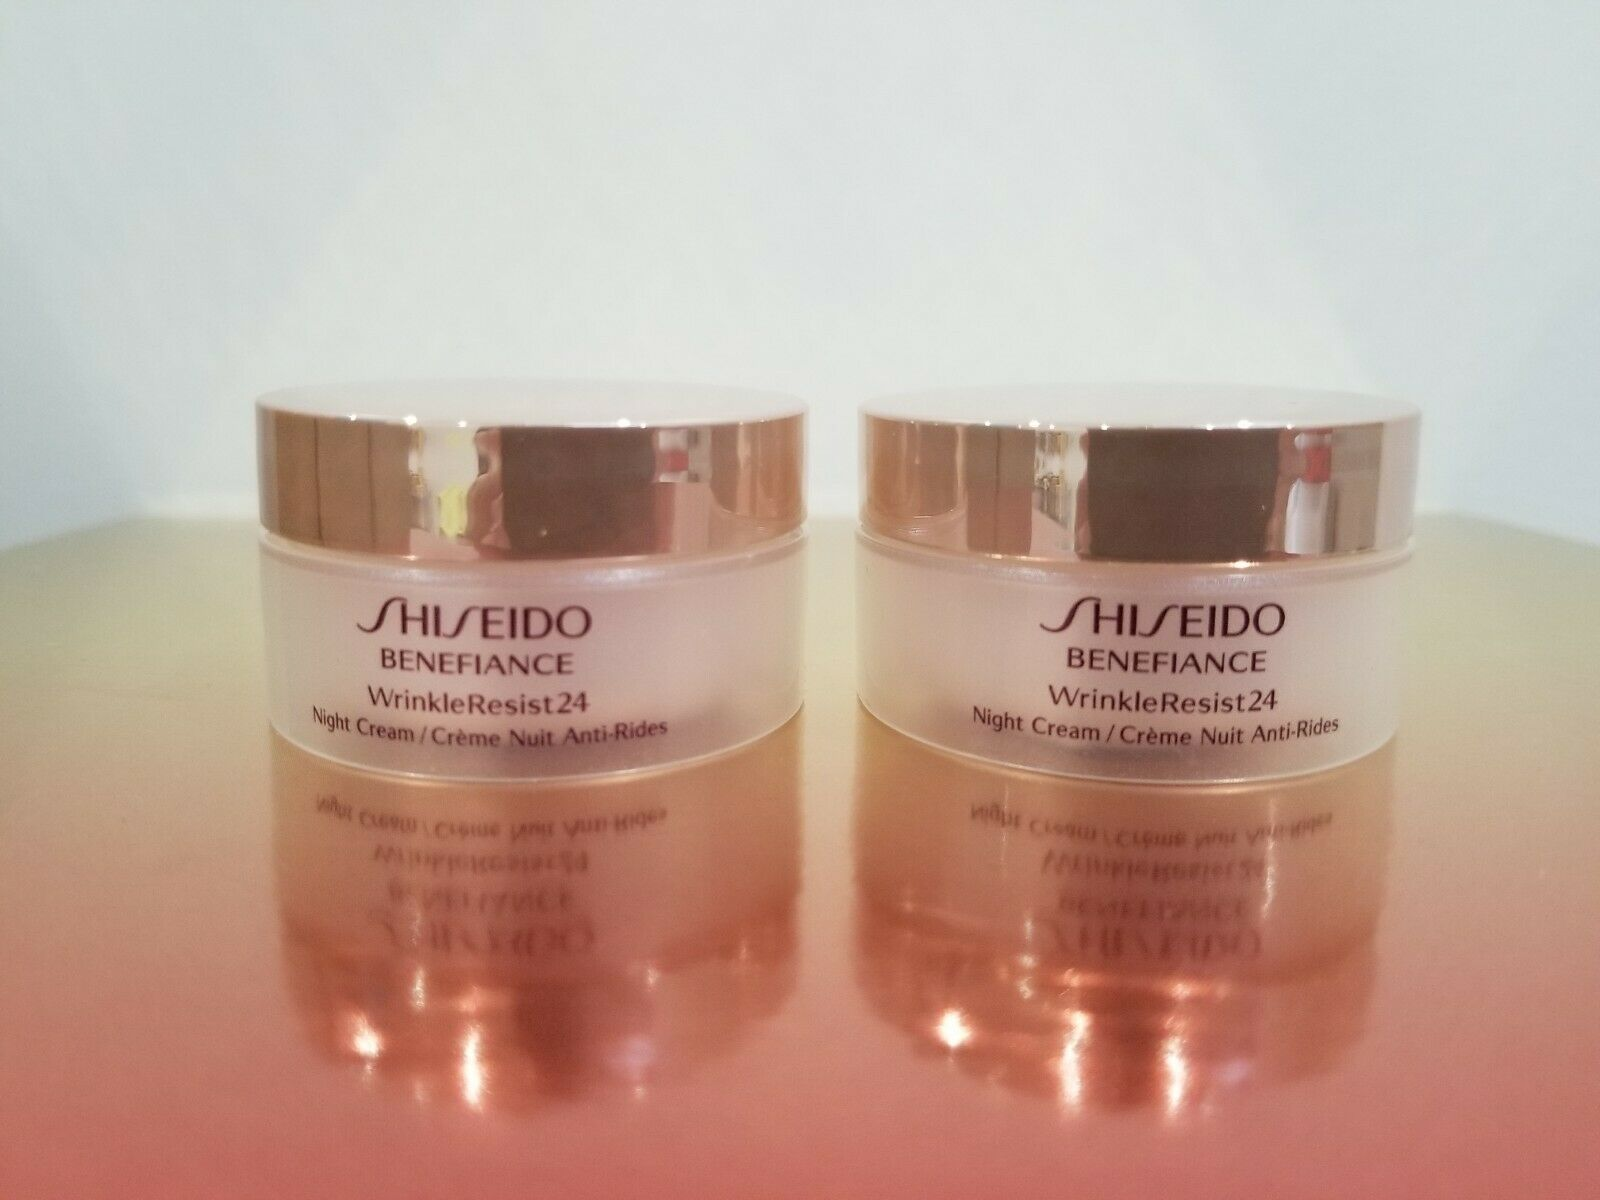 Primary image for 2 x Shiseido Benefiance Wrinkle Resist 24 Night Cream 18ml